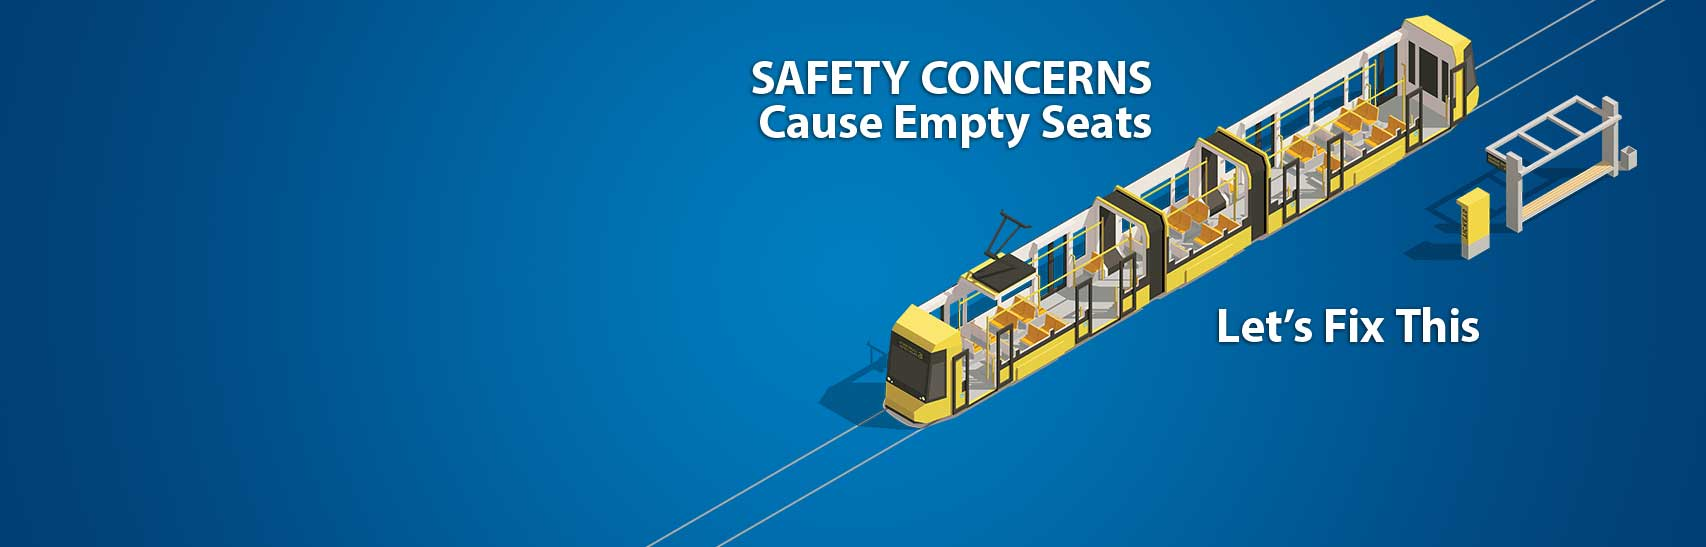 Safety Concerns Cause Empty Seats